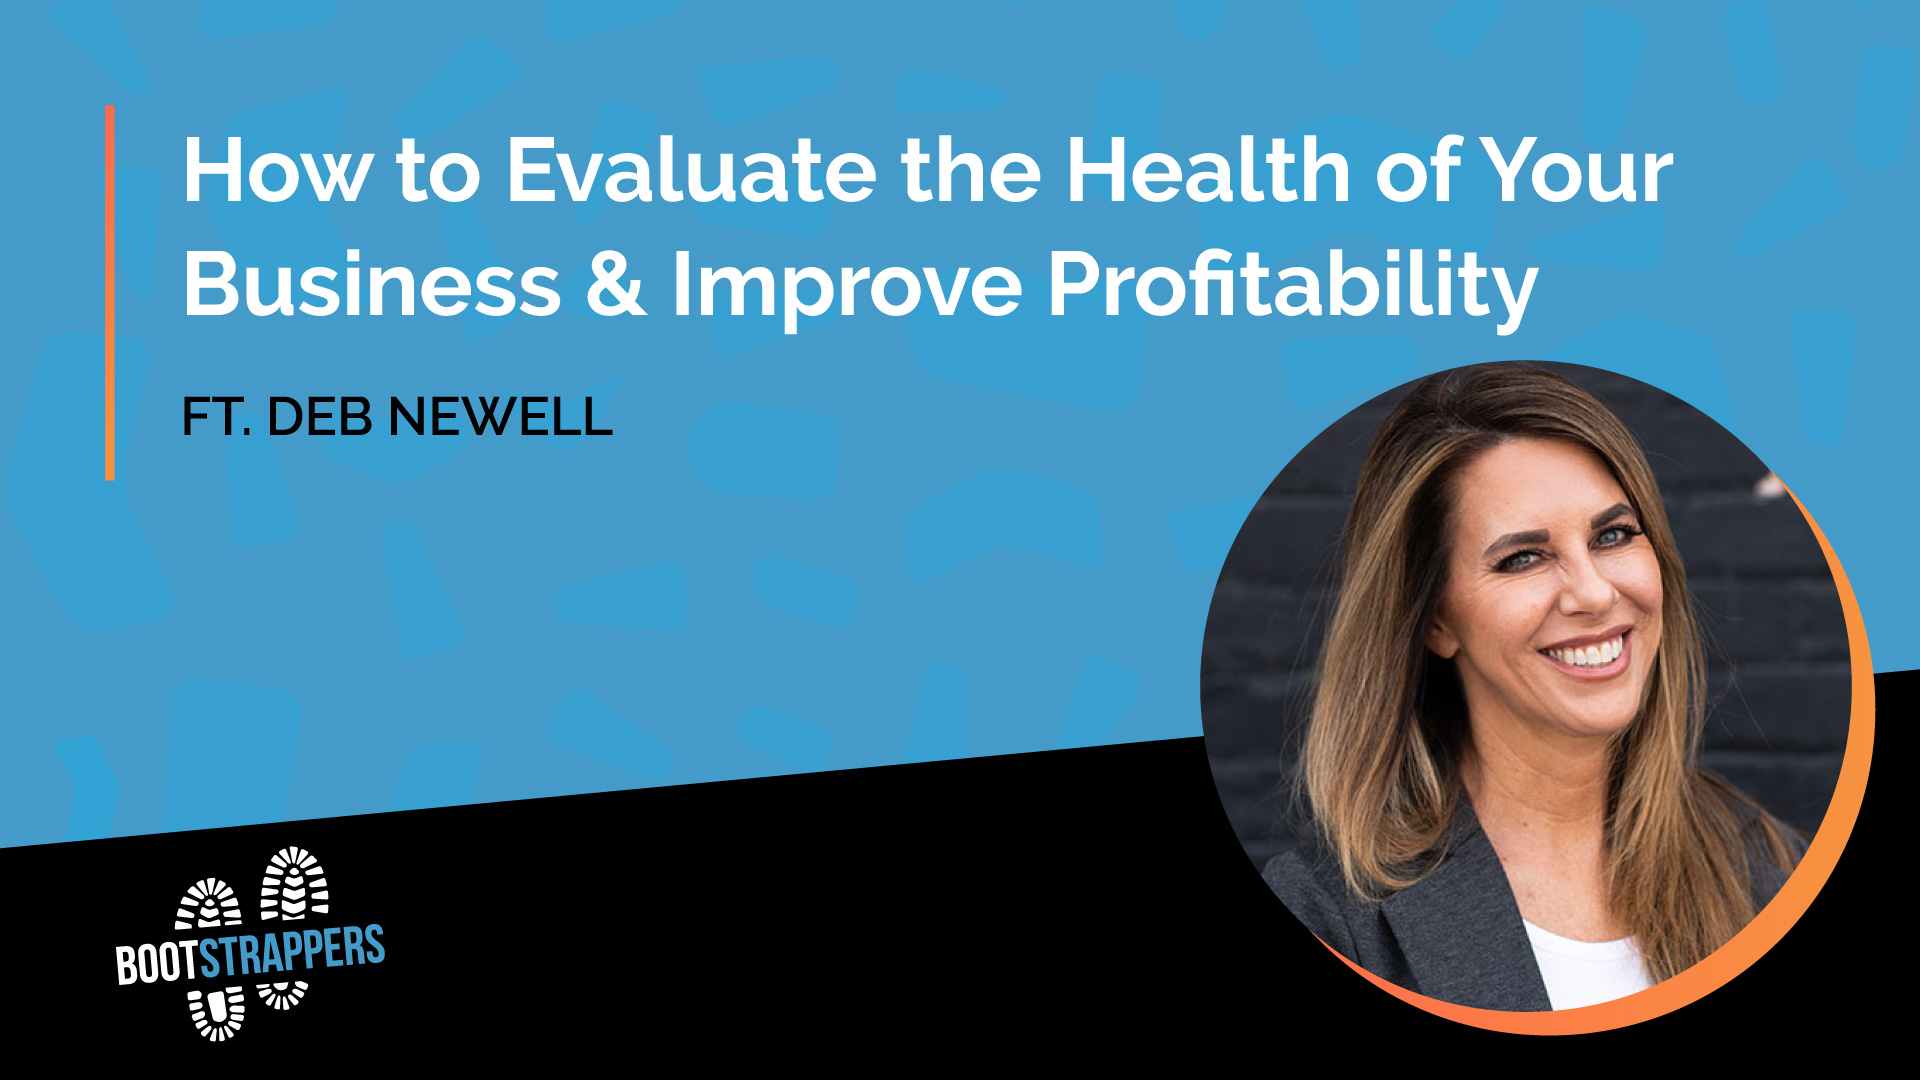 anequim-bootstrappers-how-to-evaluate-health-business-improve-profitability